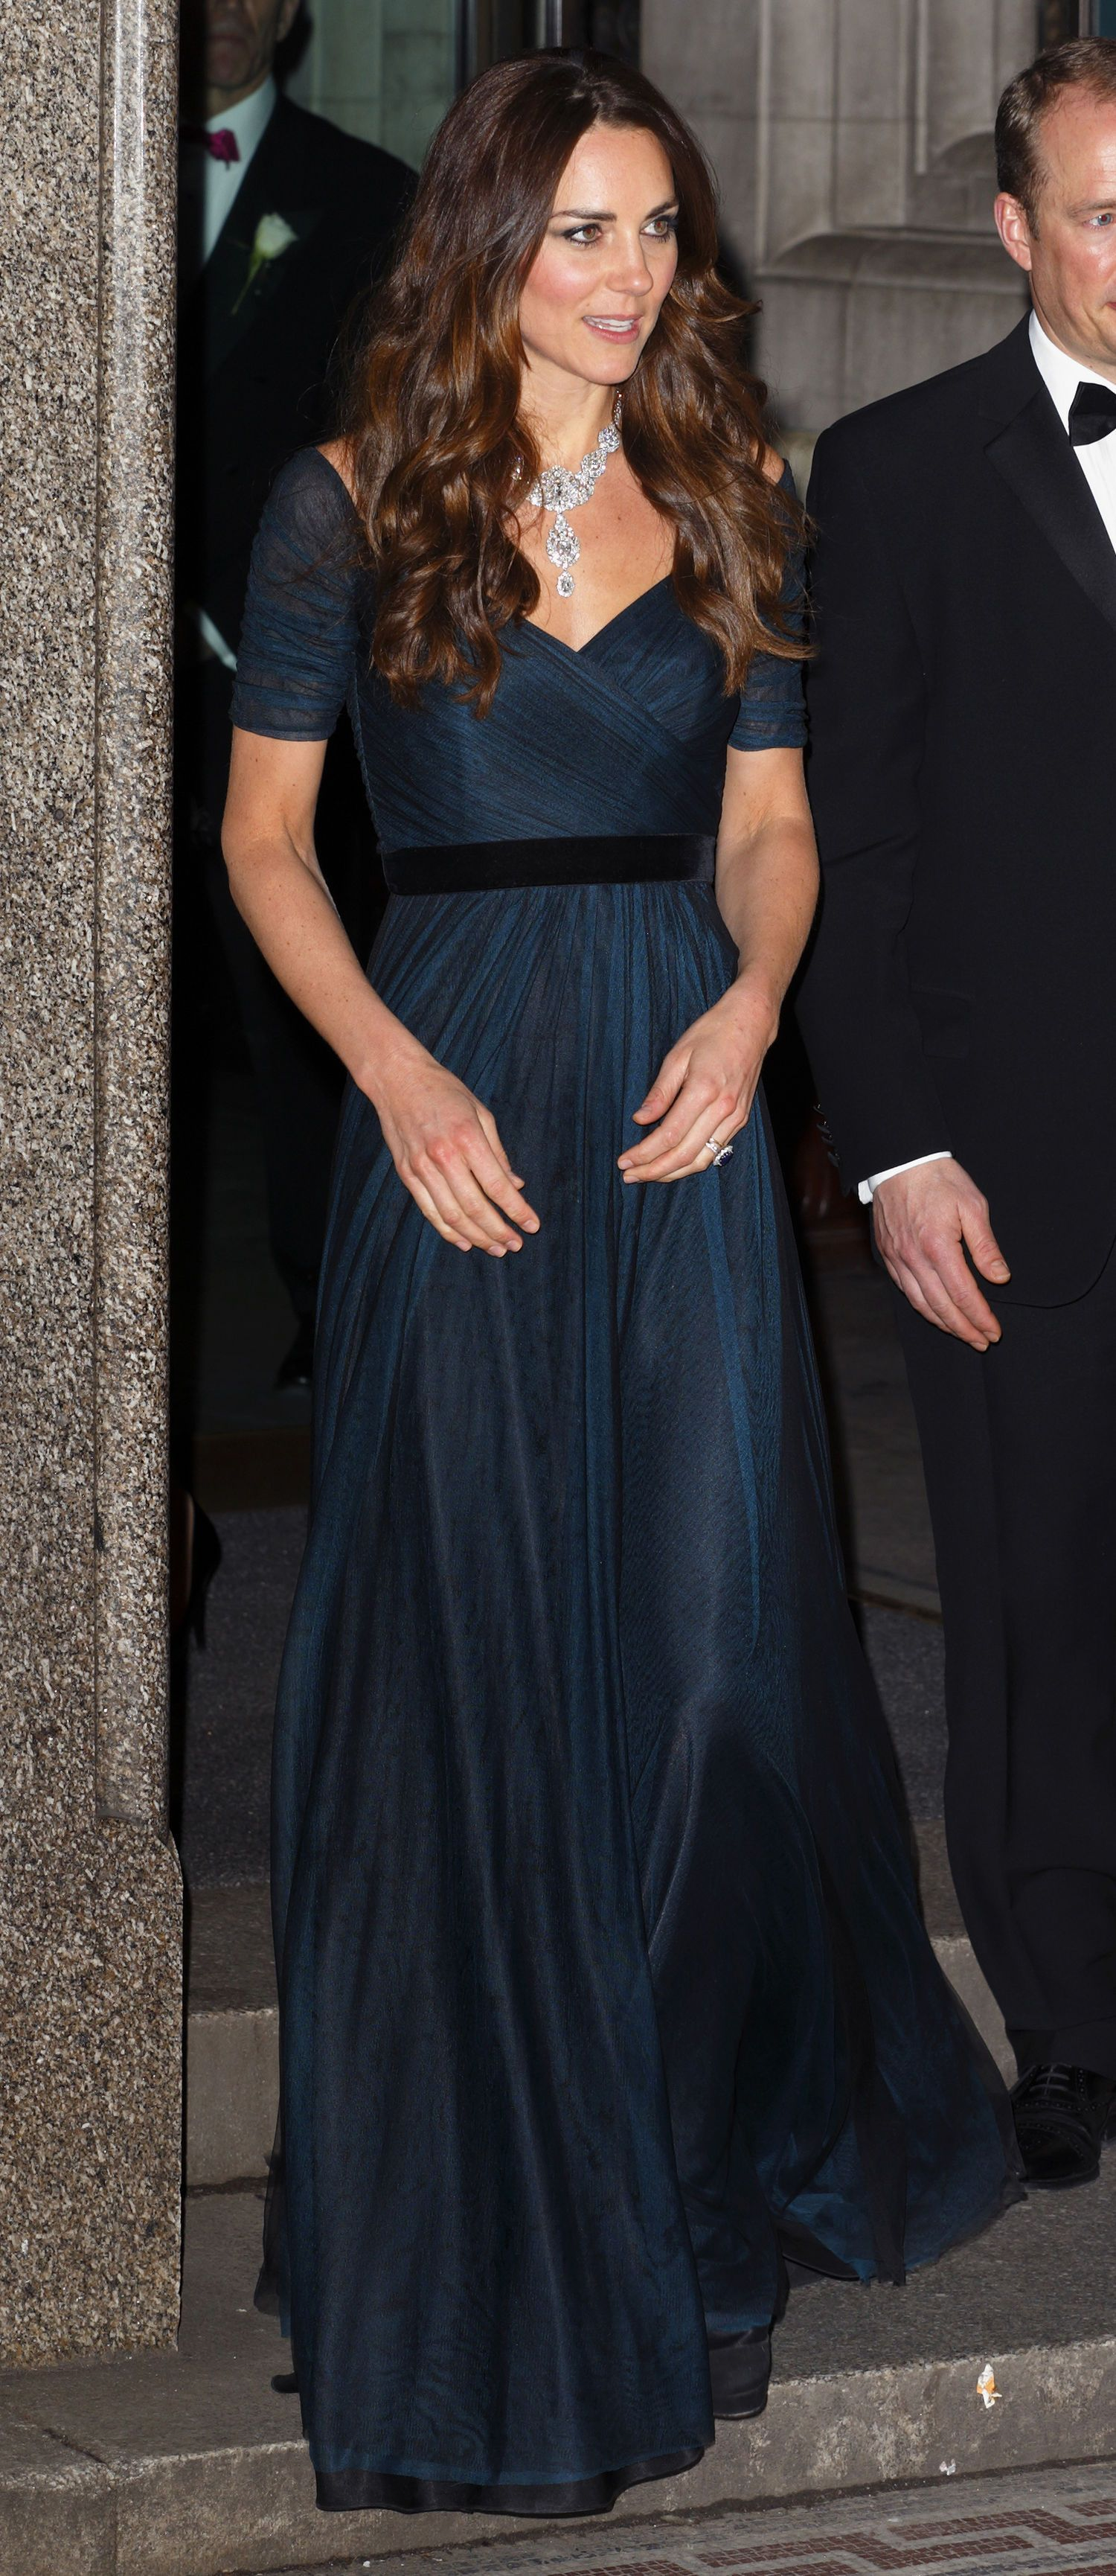 Lace dress kate middleton  Getting Along With In Laws Can Result in Style Rewards Note Duchess